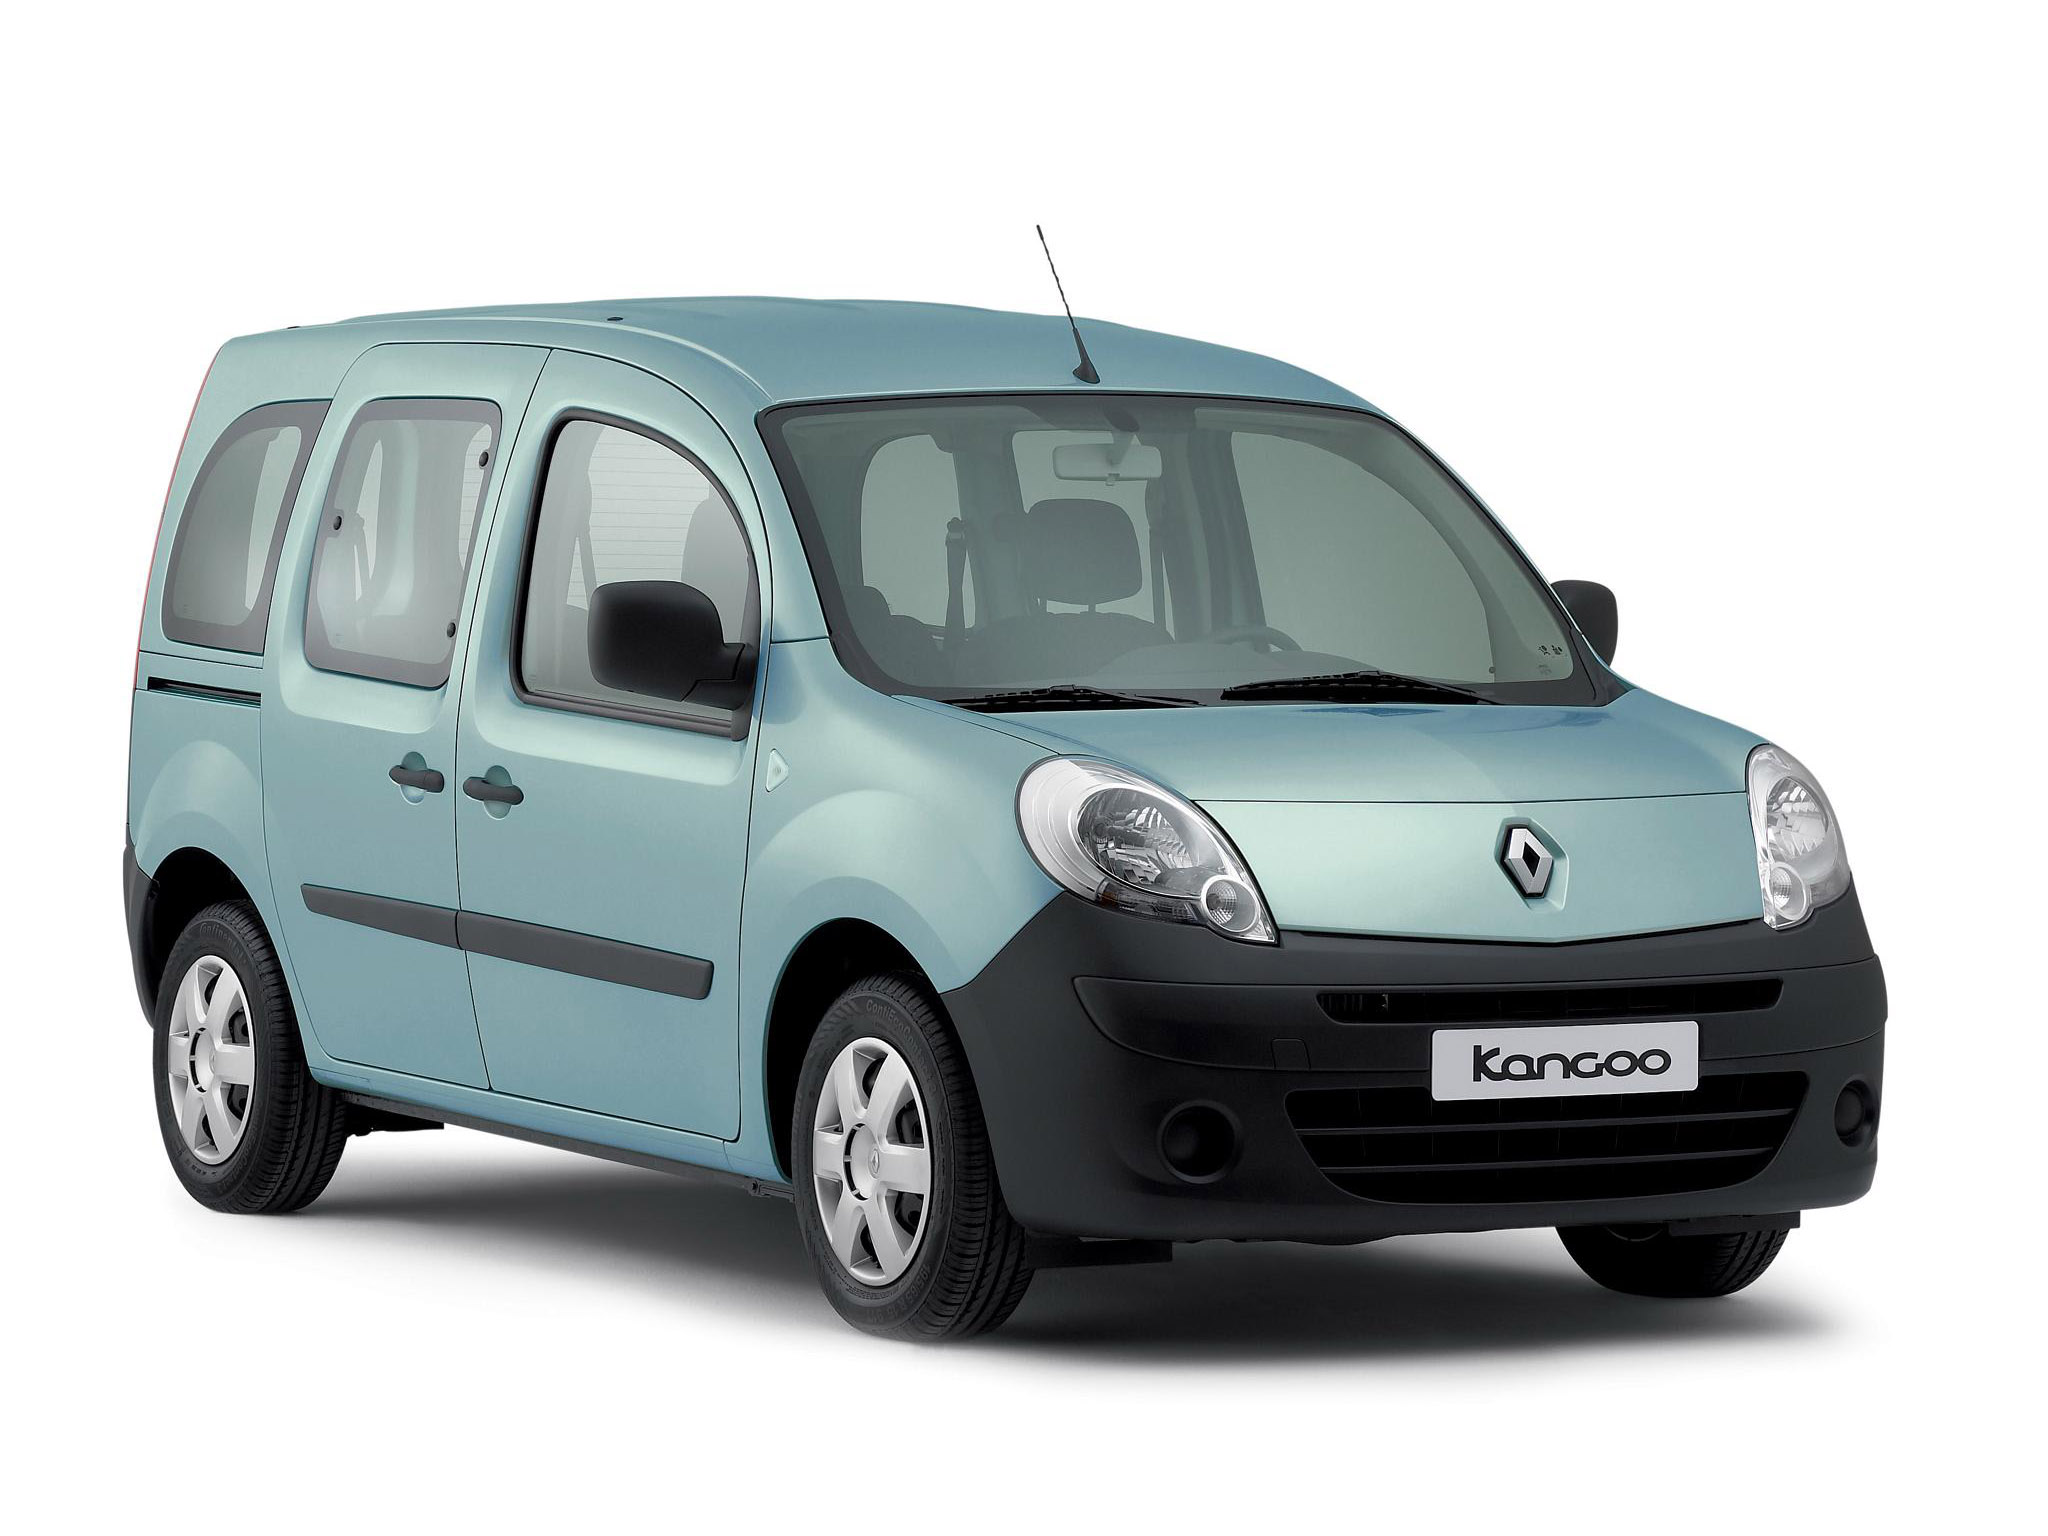 renault kangoo entry version renault kangoo entry version photo 01 car in pictures car photo. Black Bedroom Furniture Sets. Home Design Ideas